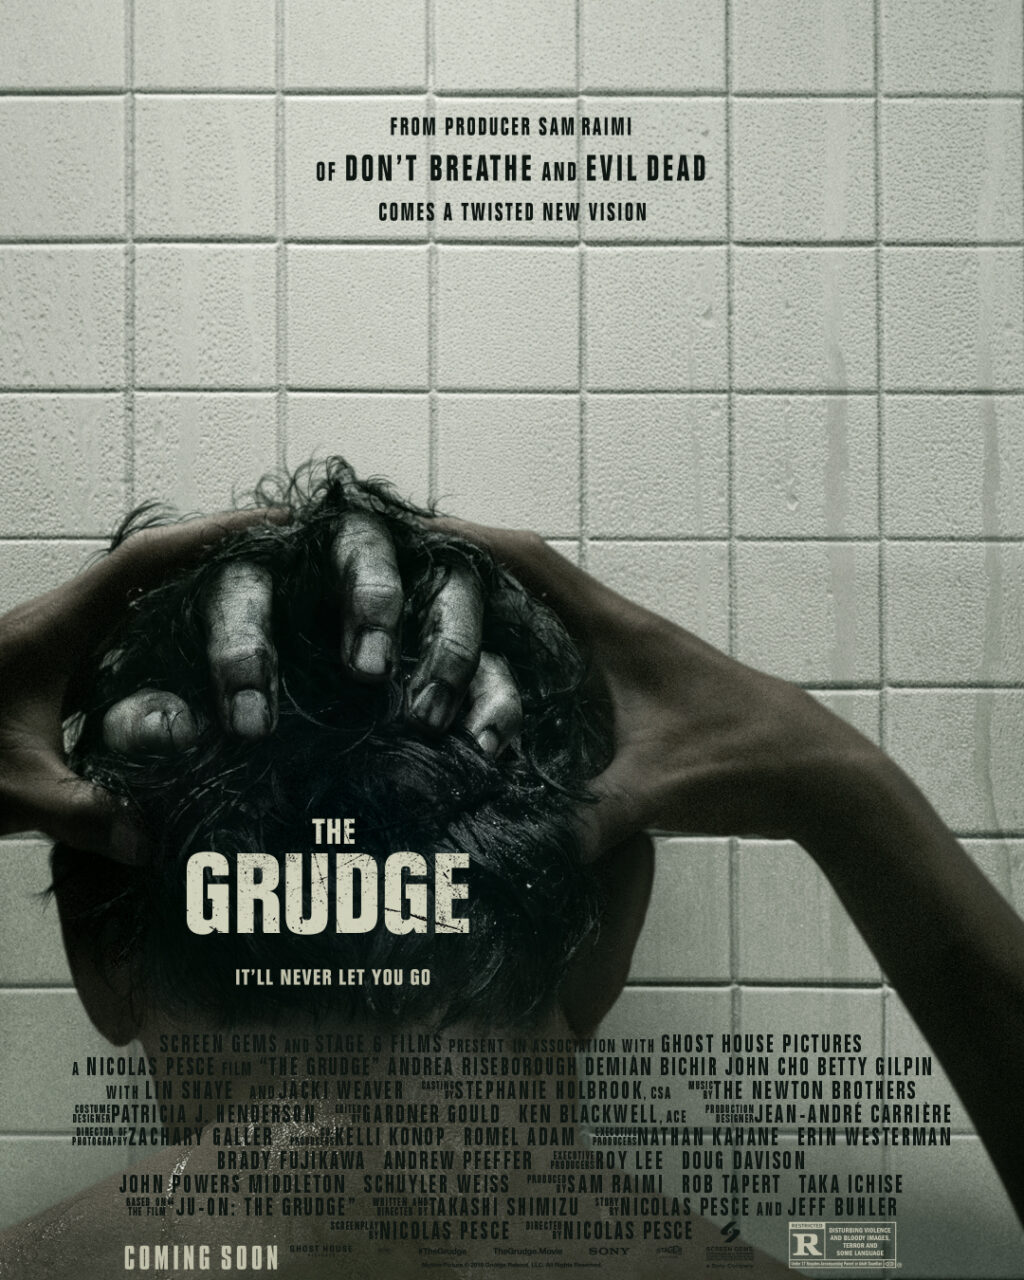 the grudge GRDG OnLine 1080x1350 social FNL 01 rgb 1024x1280 - In Latest Featurette, Sam Raimi Discusses the Legacy of THE GRUDGE